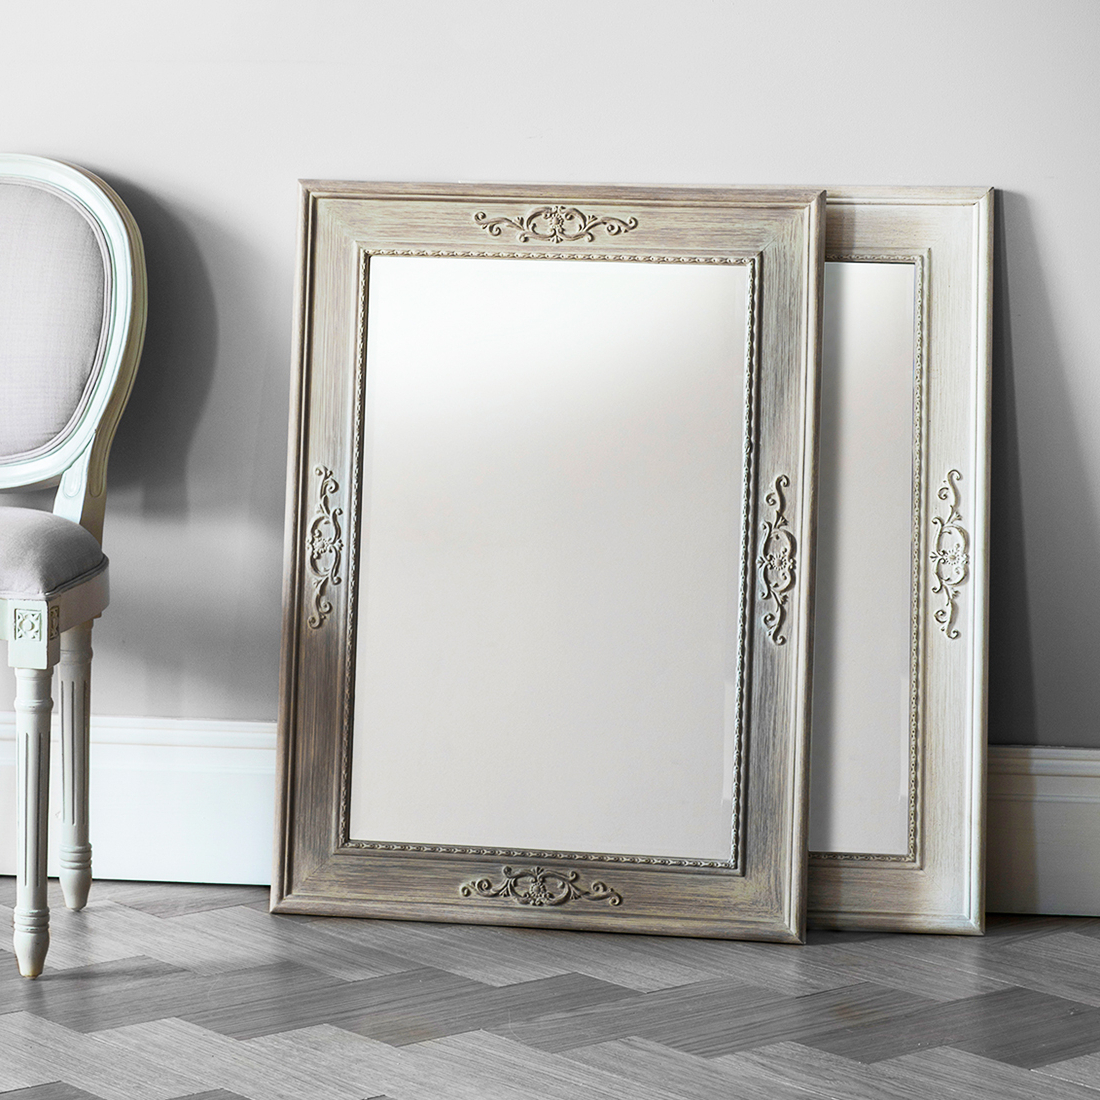 Wood Framed Wall Mirrors Pertaining To Preferred Decorative Rectangular Wooden Wall Mirrors – White Or Limed Oak (View 20 of 20)